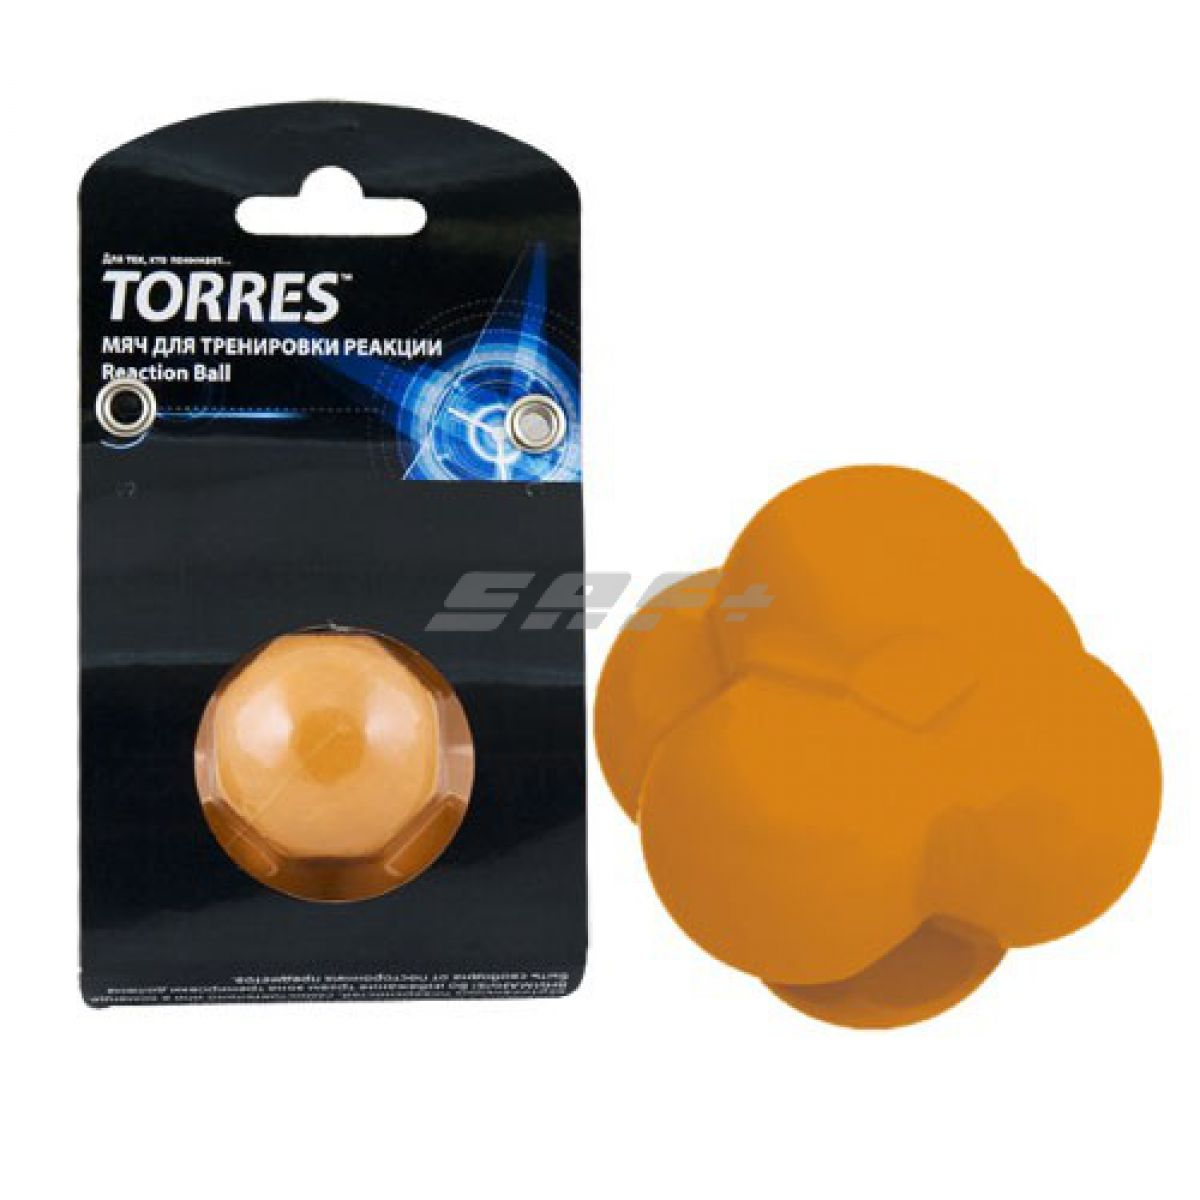 TORRES Reaction ball